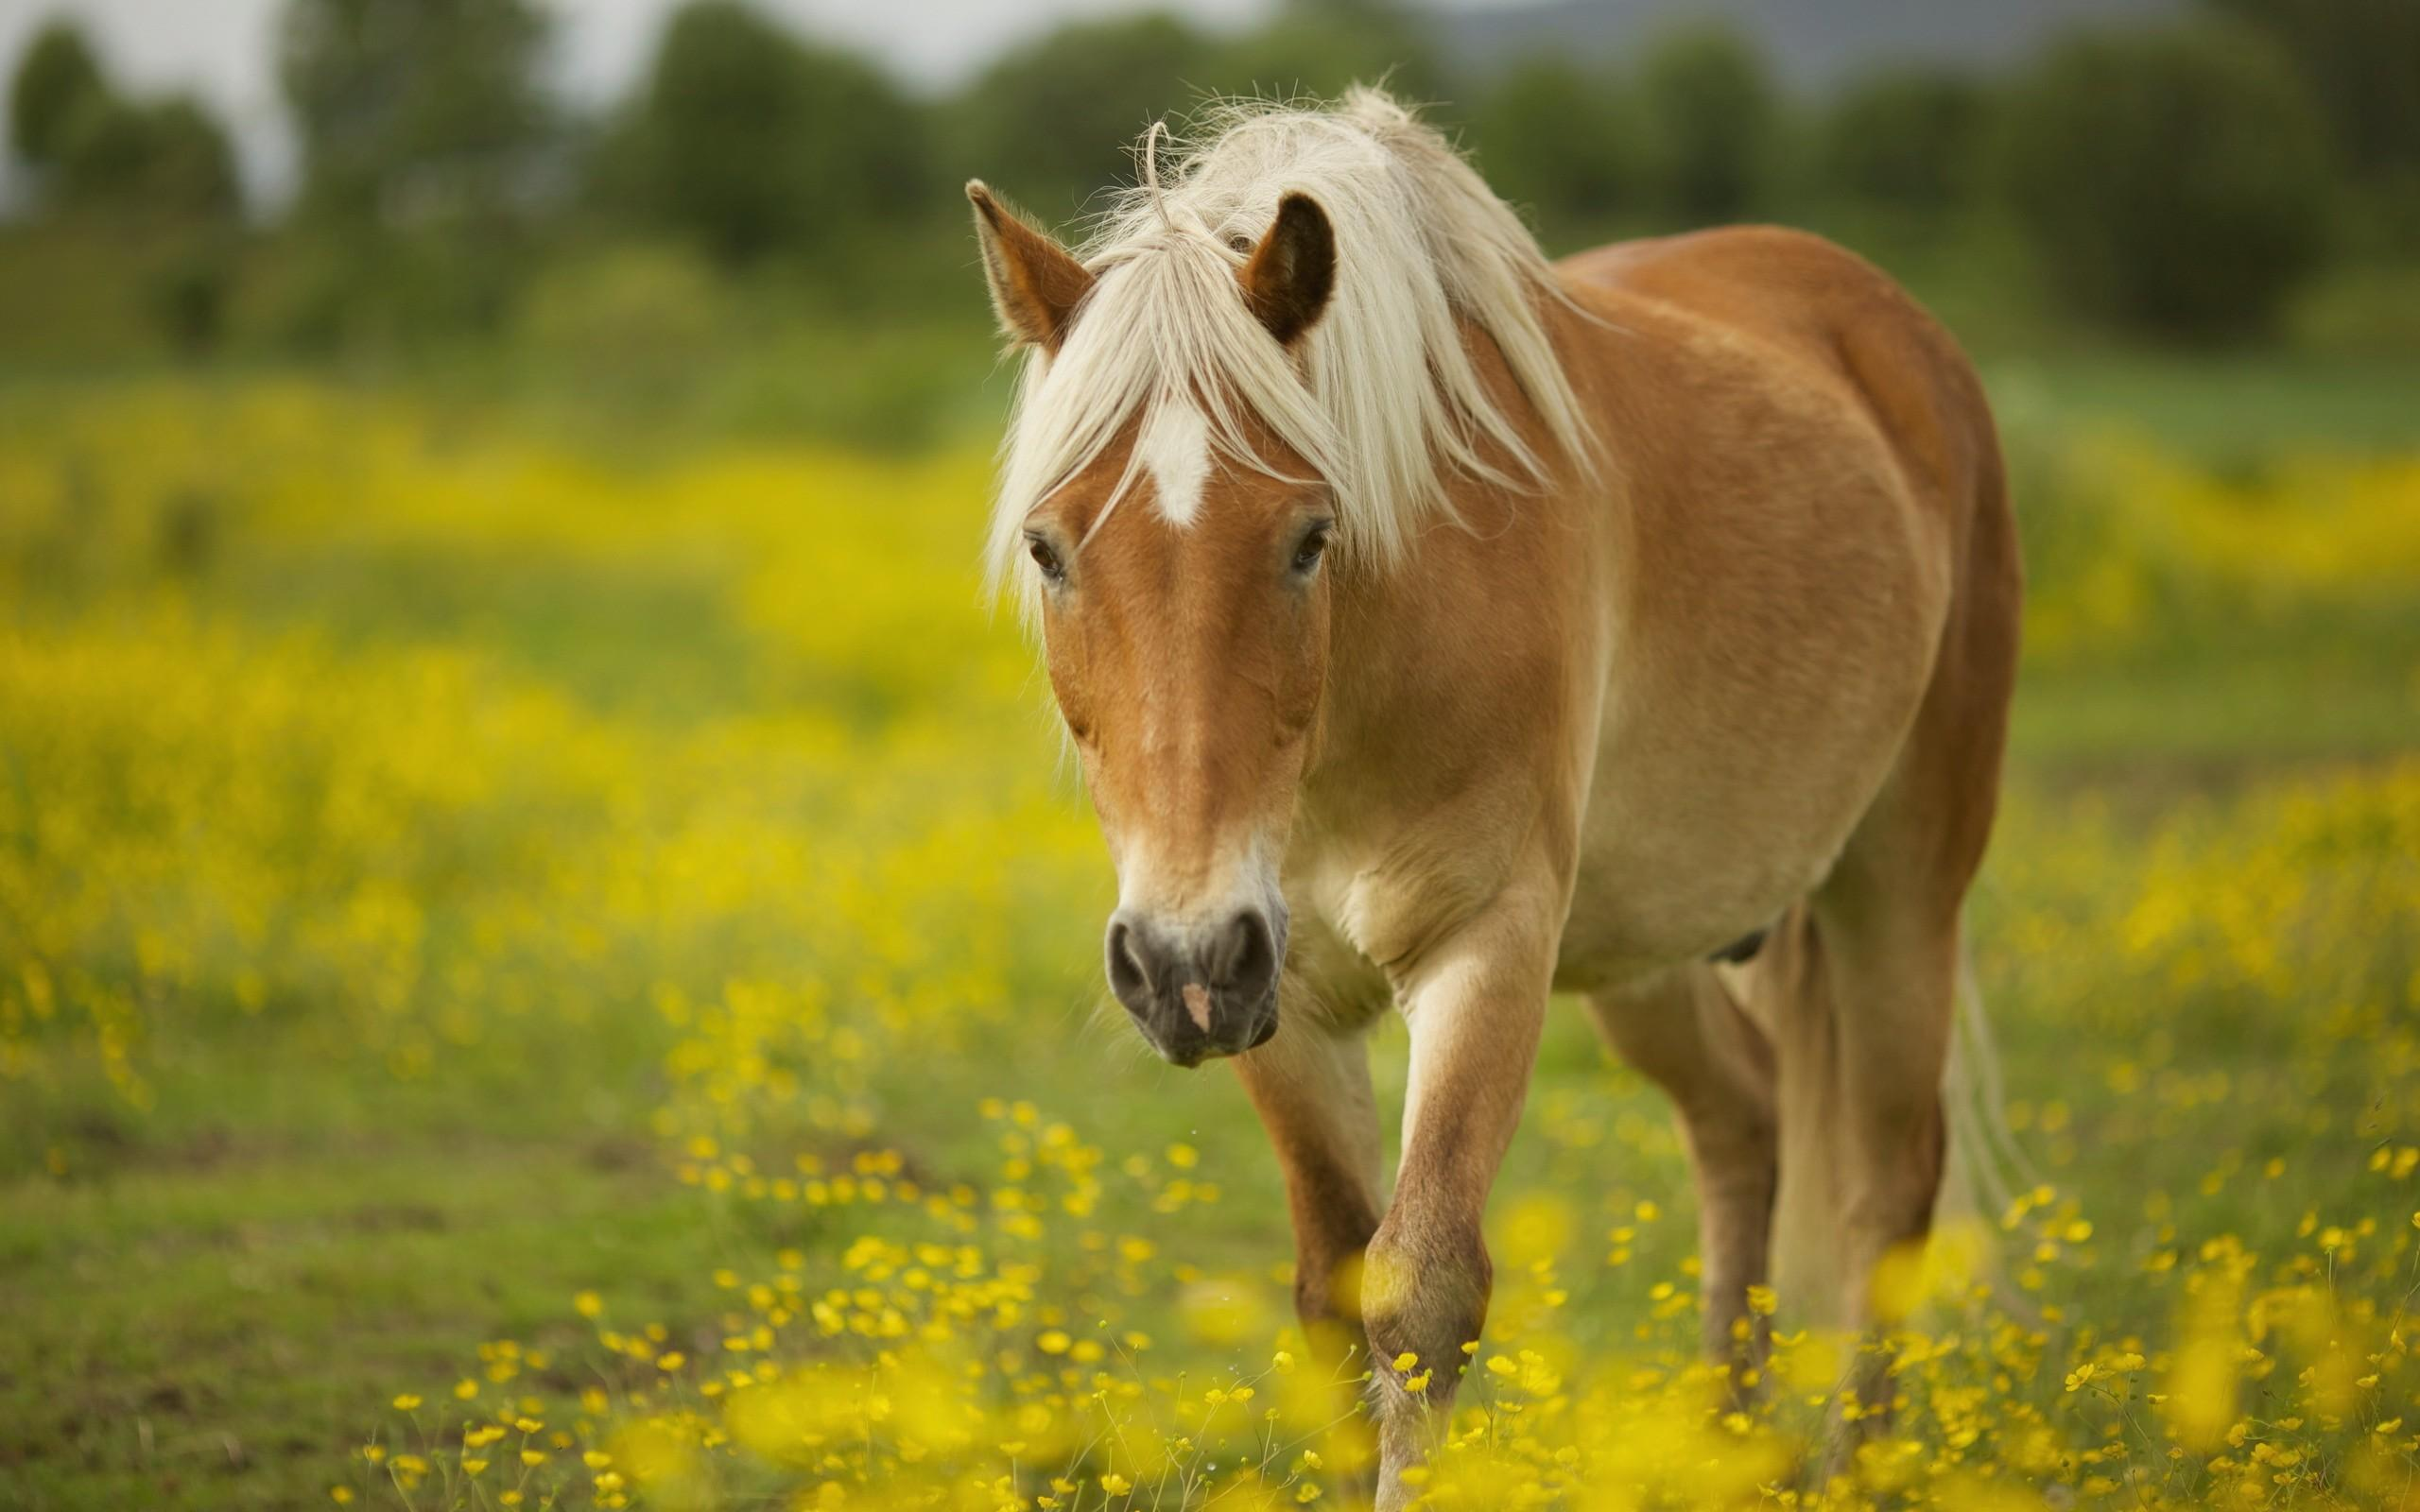 Horse wallpapers HD quality